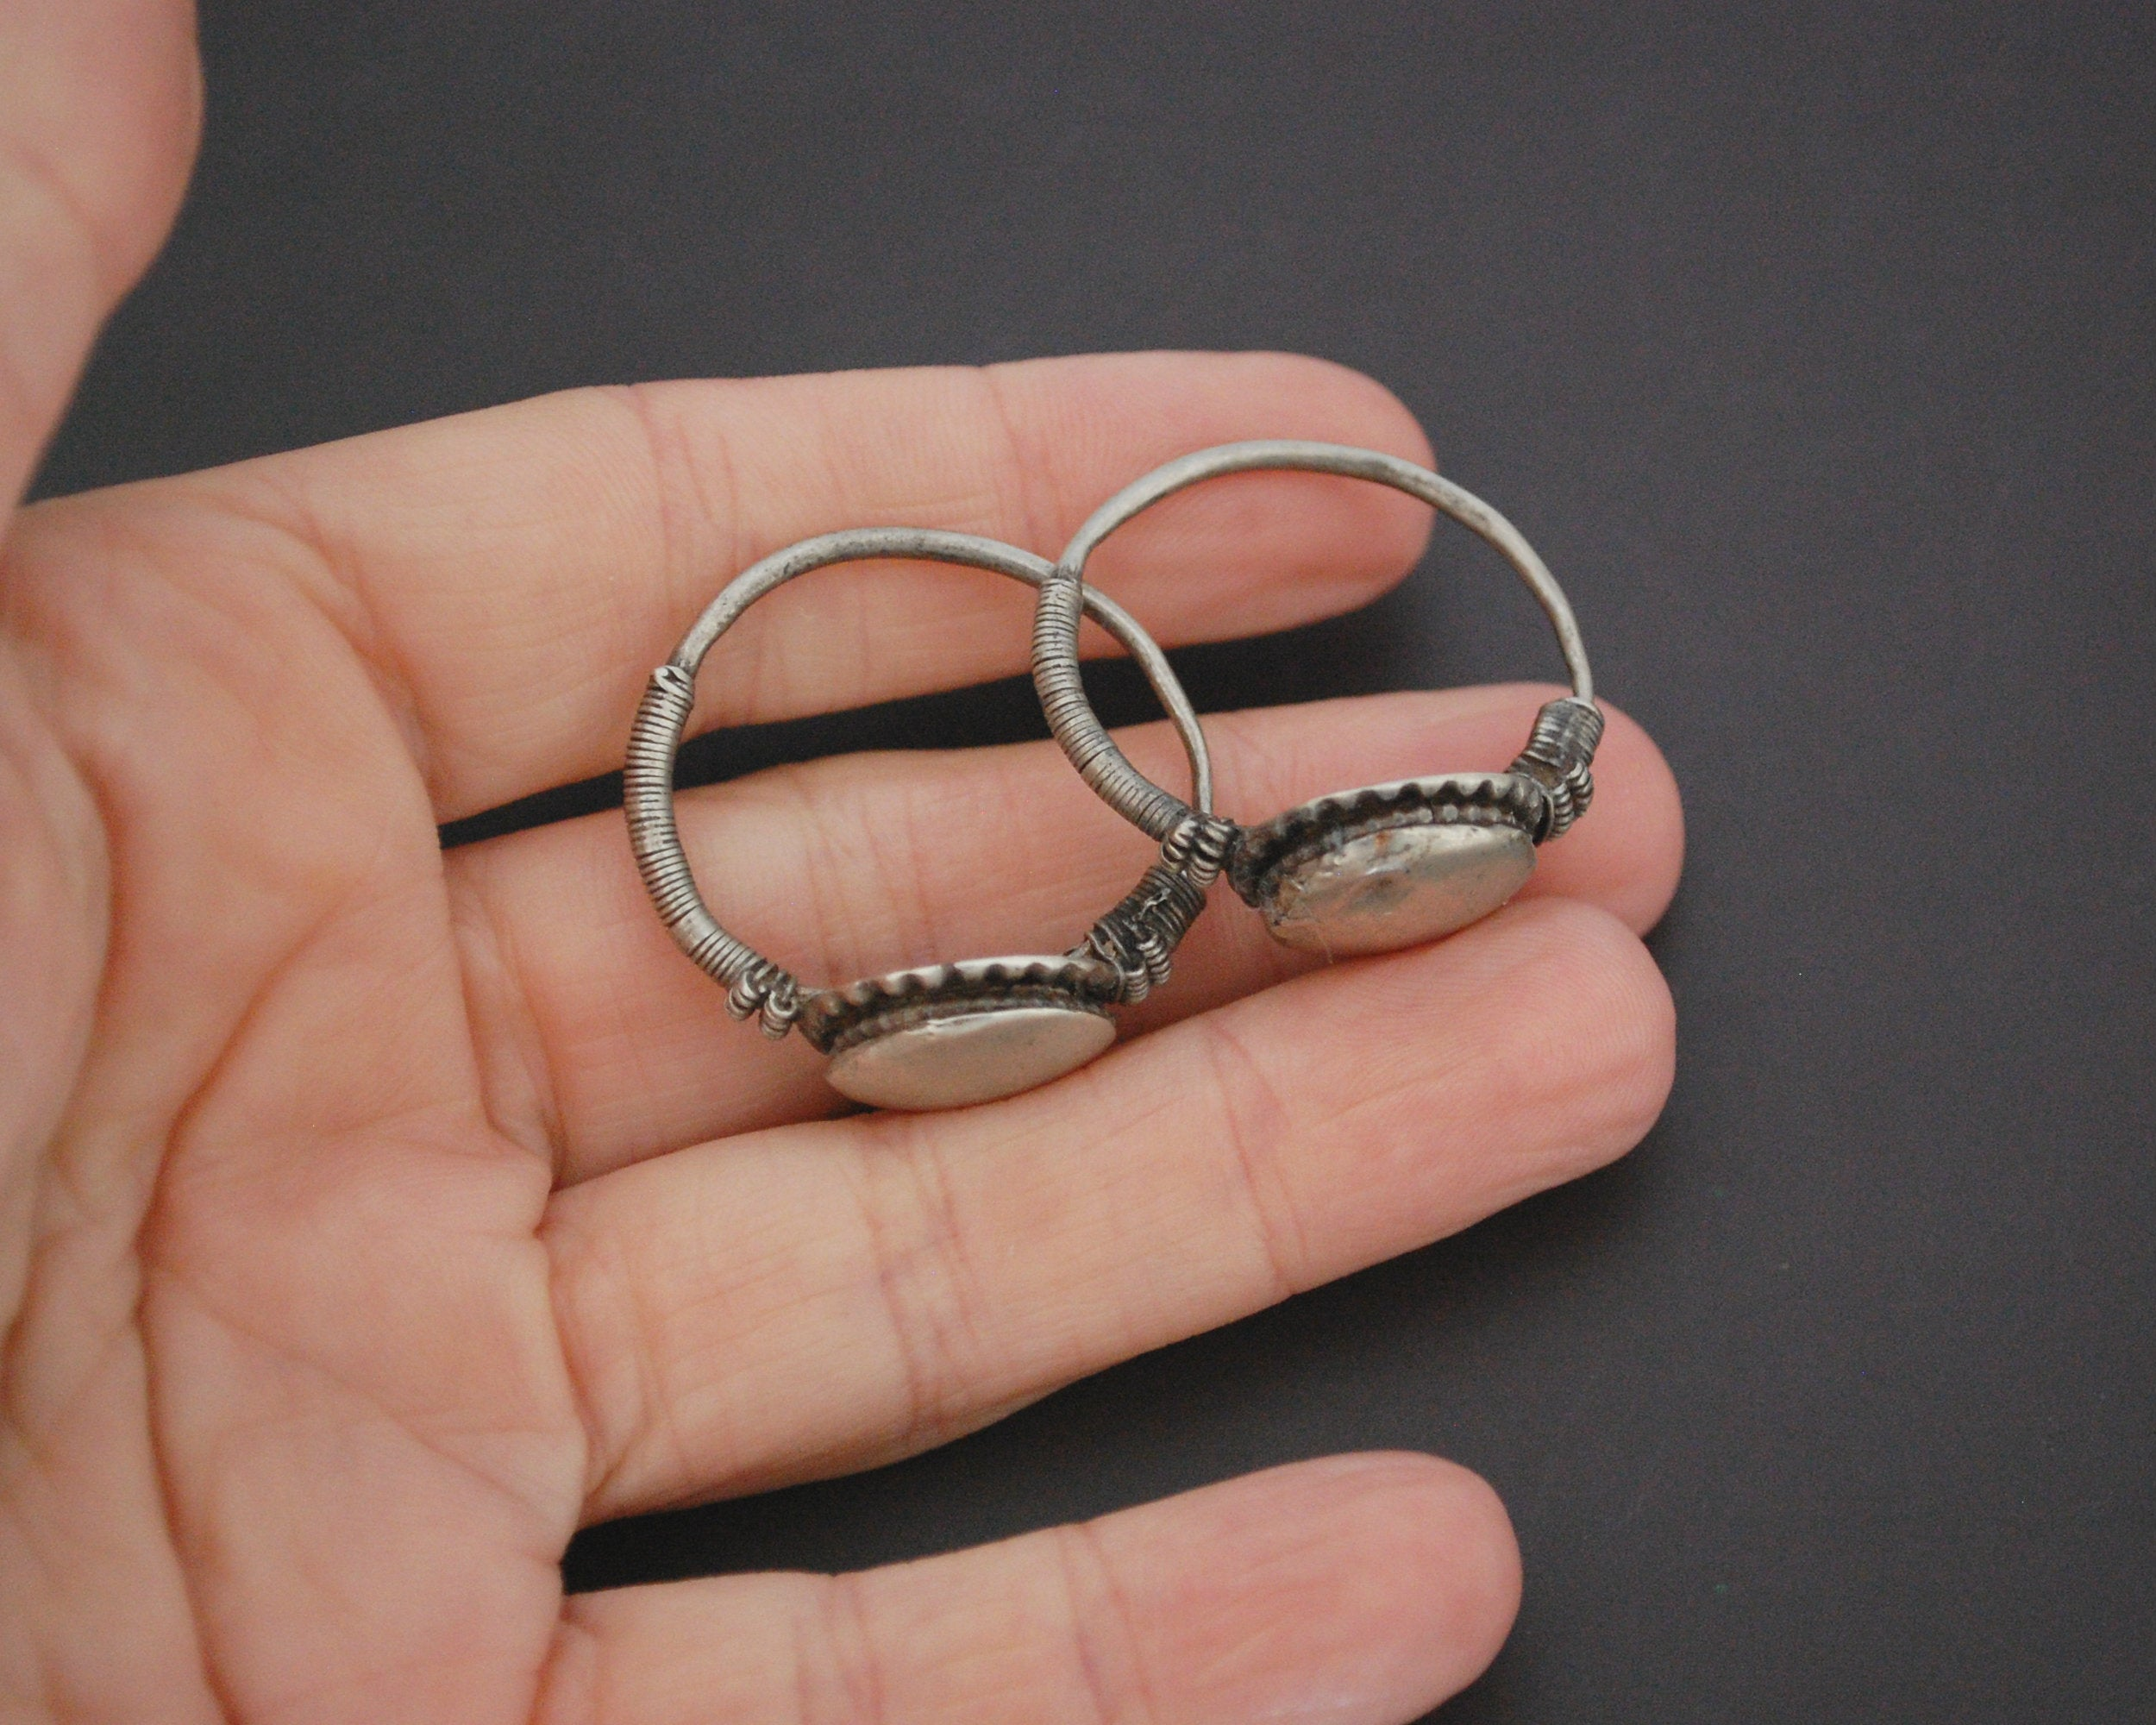 Afghani Hoop Earrings - Medium